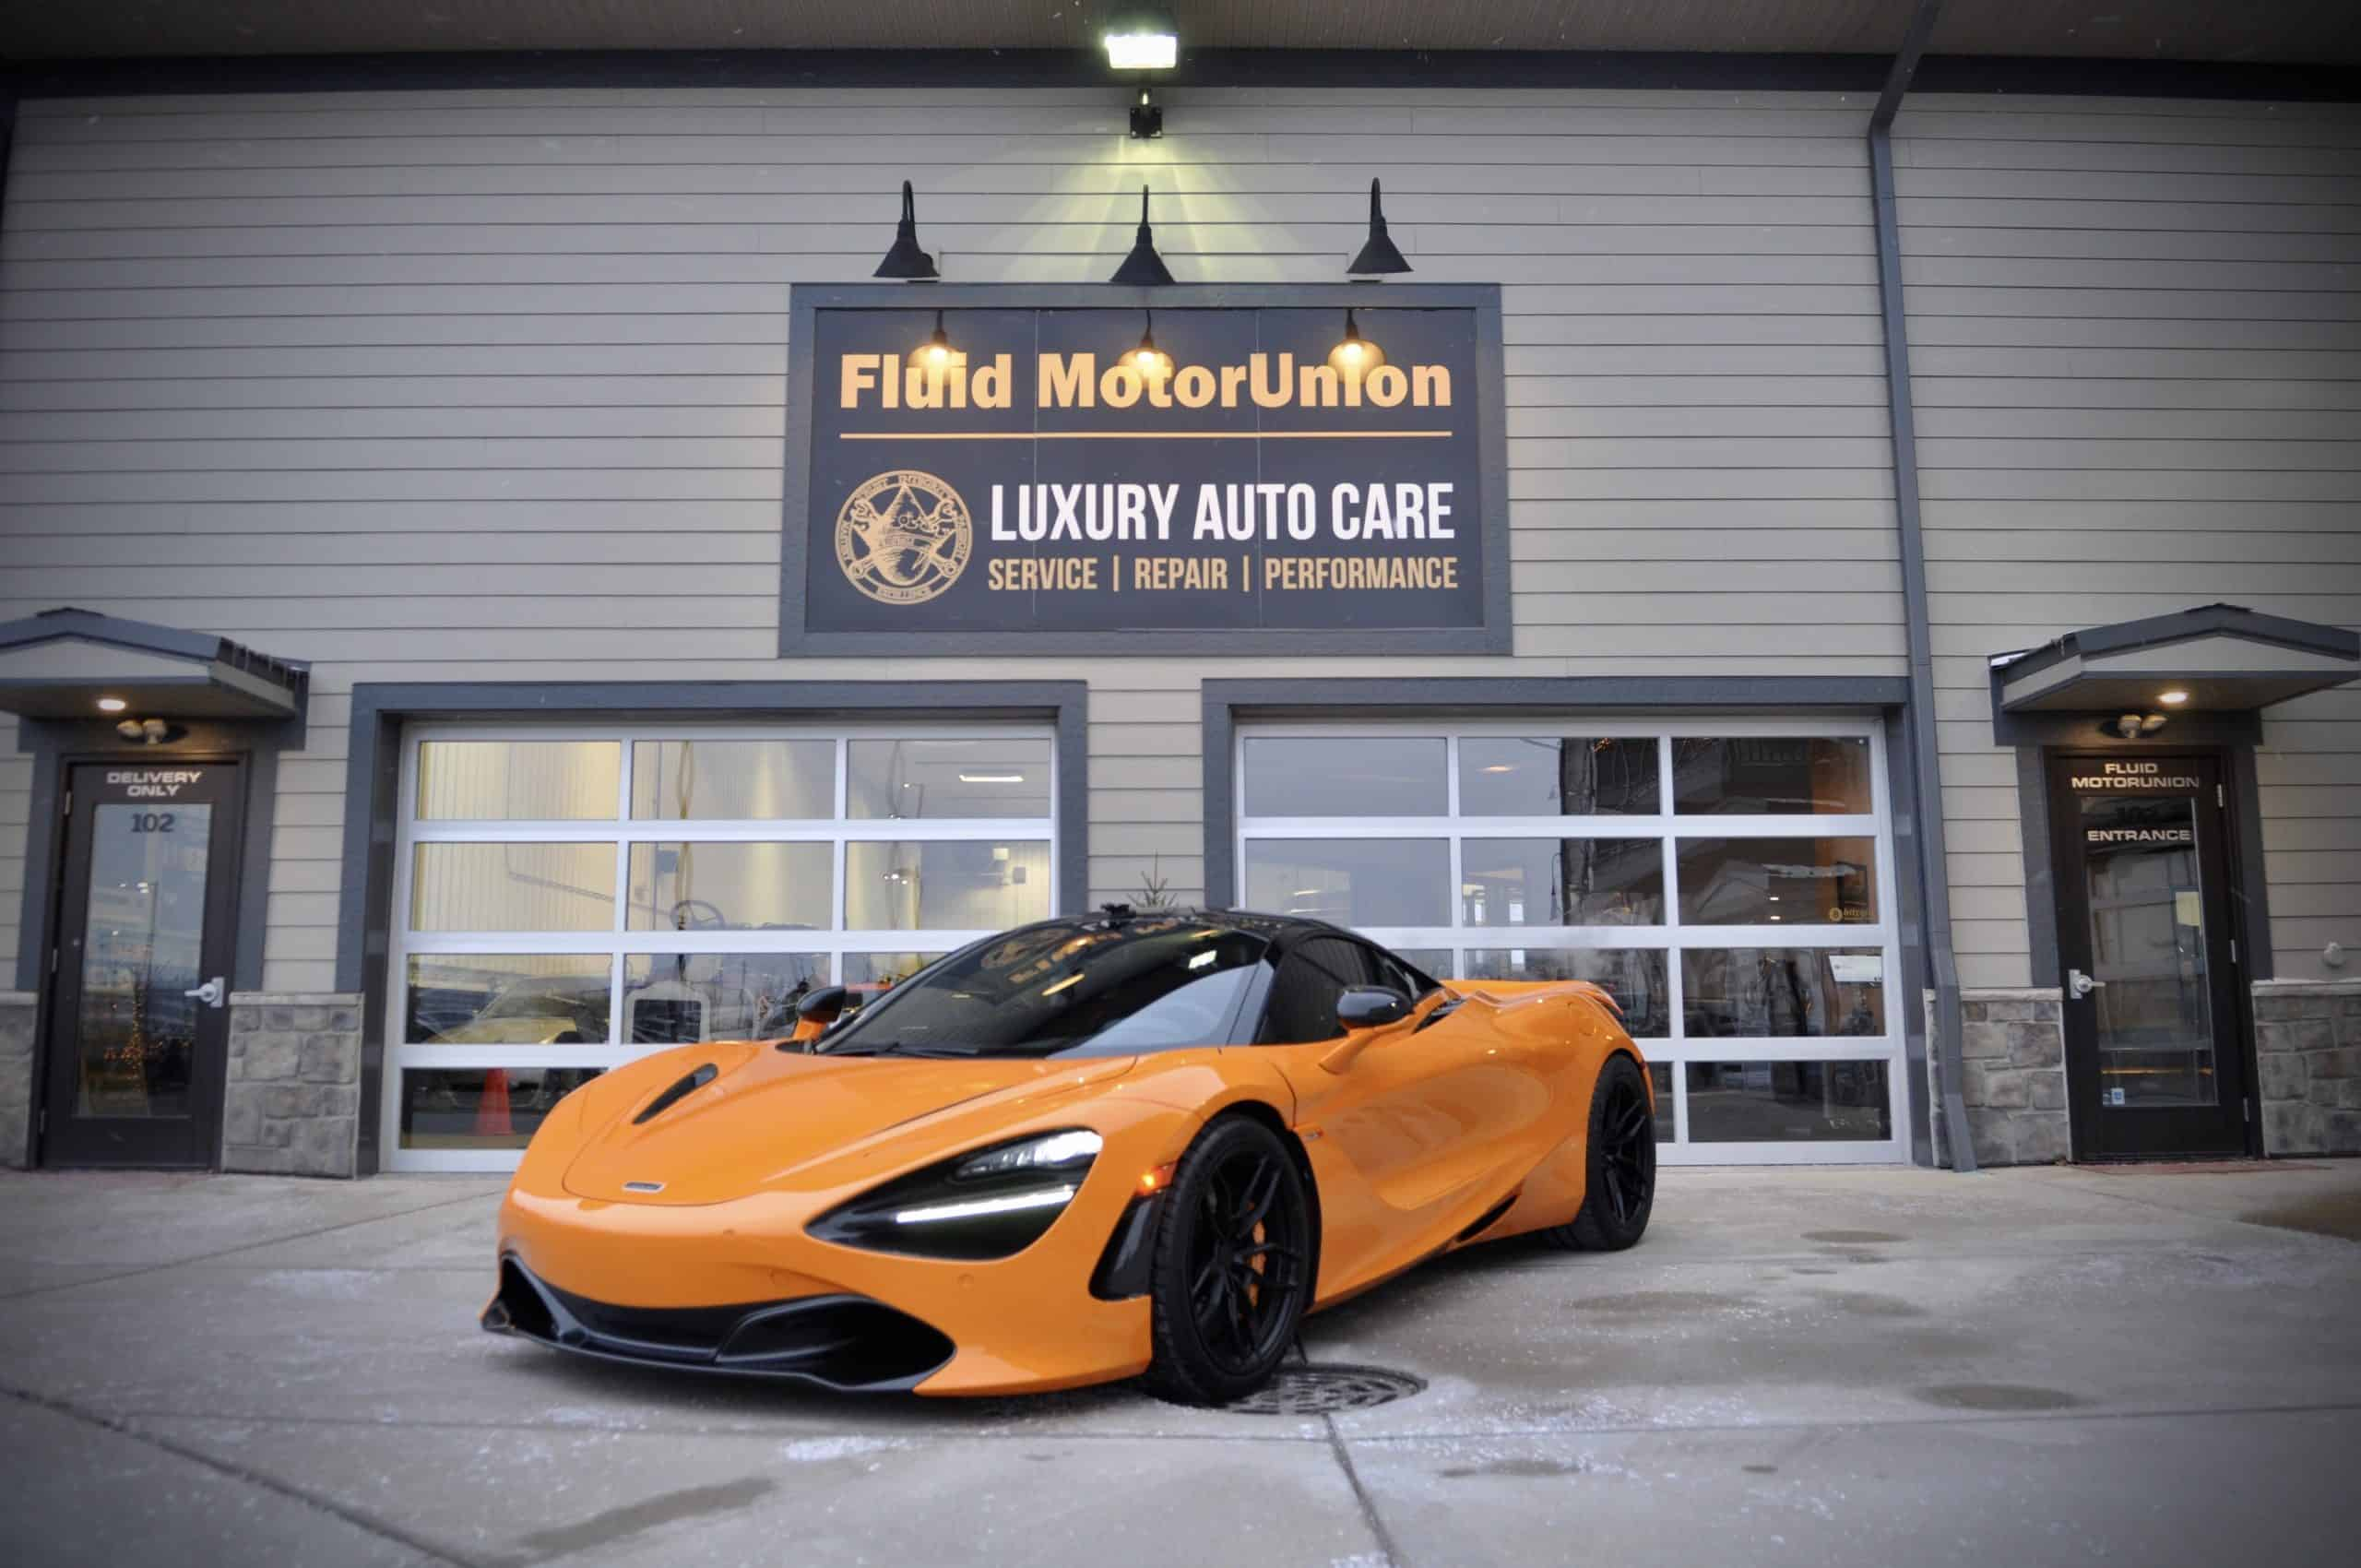 720s stage 2